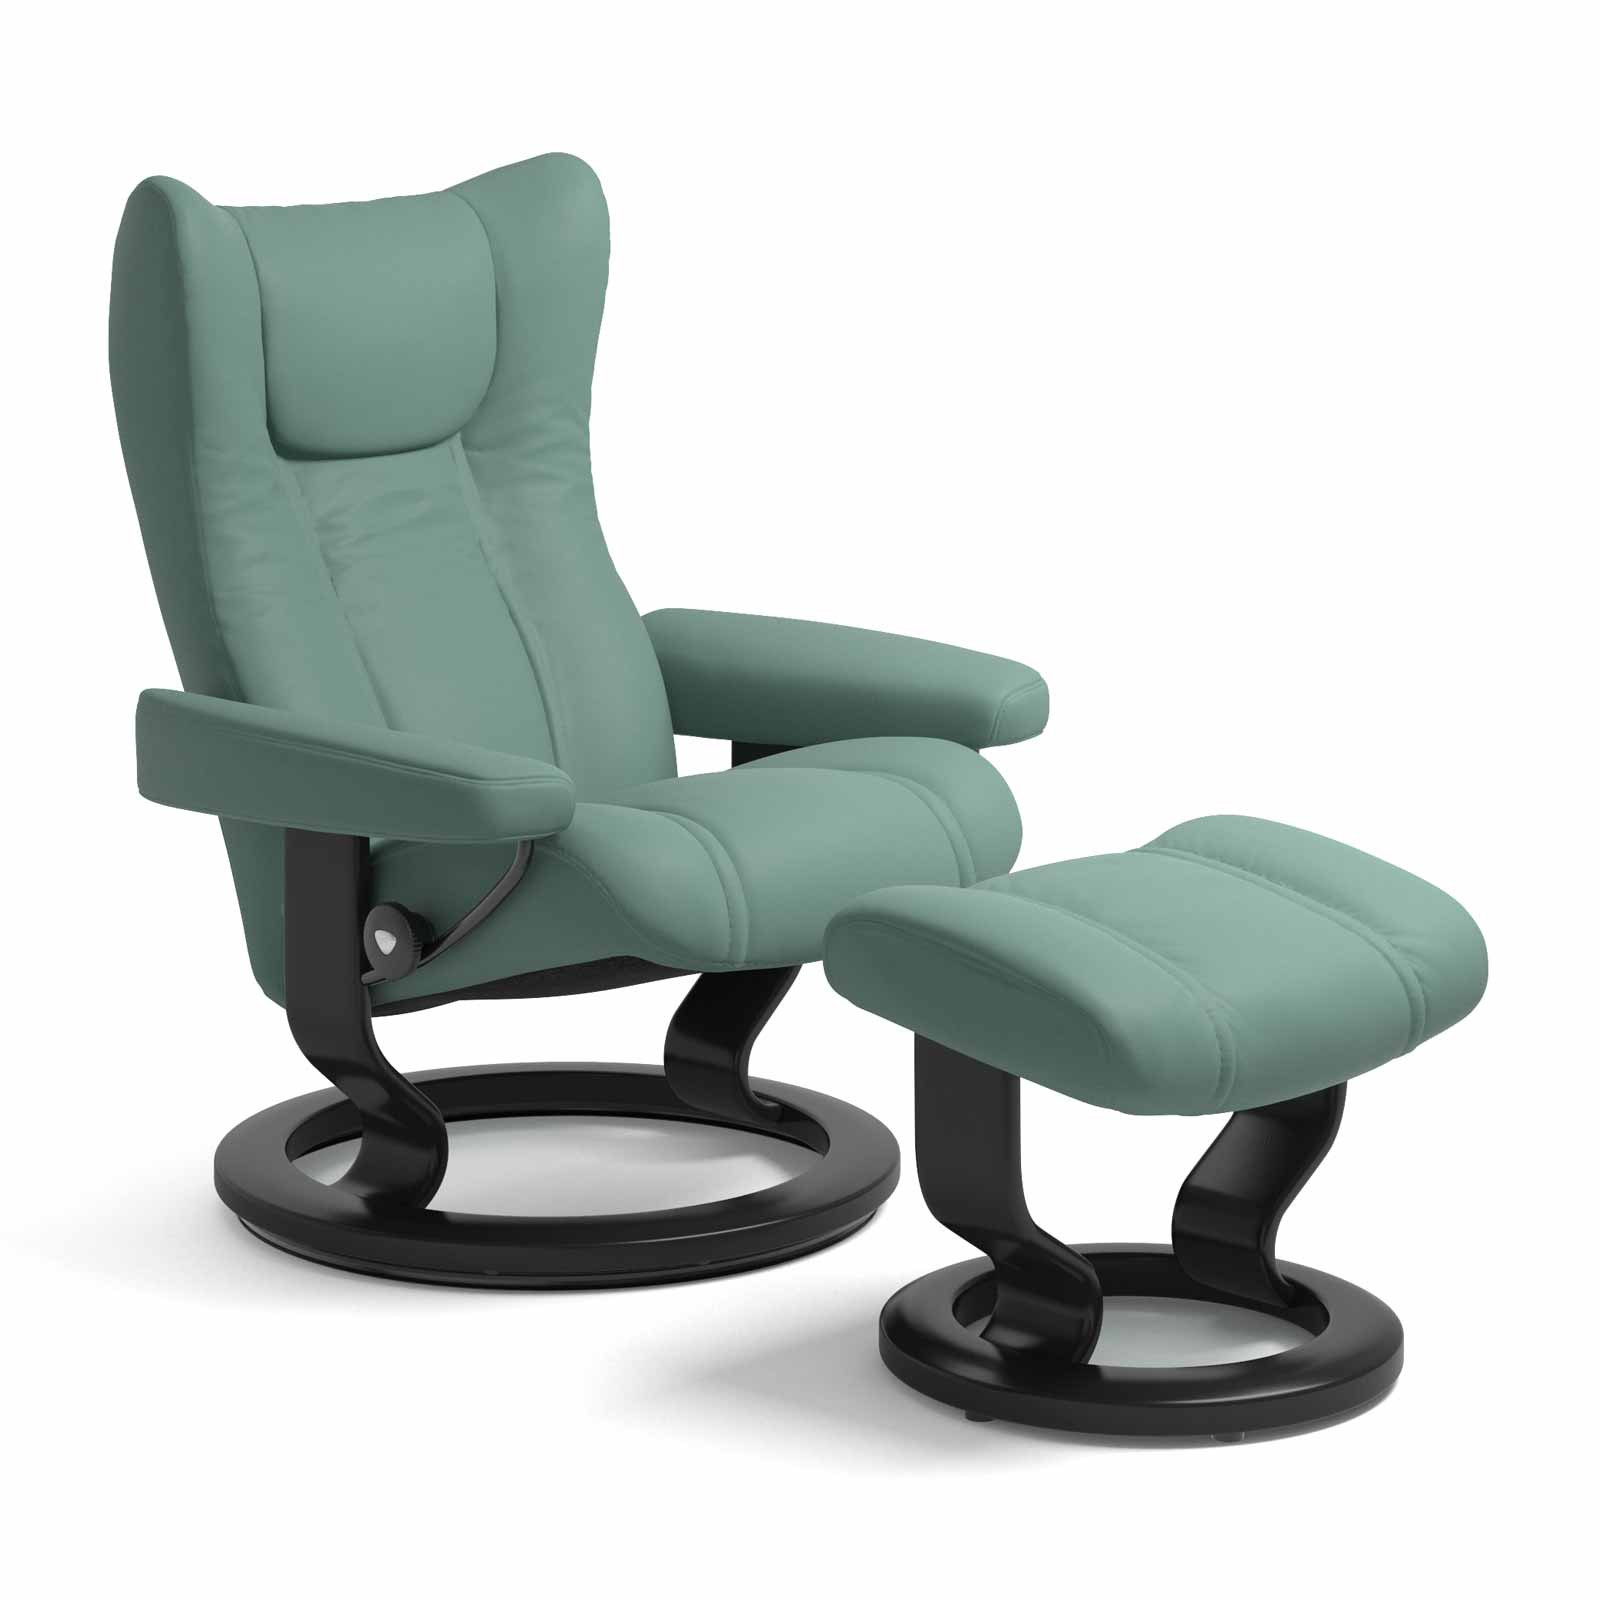 Sessel Aqua Stressless Wing Classic Aqua Green Mit Hocker Stressless